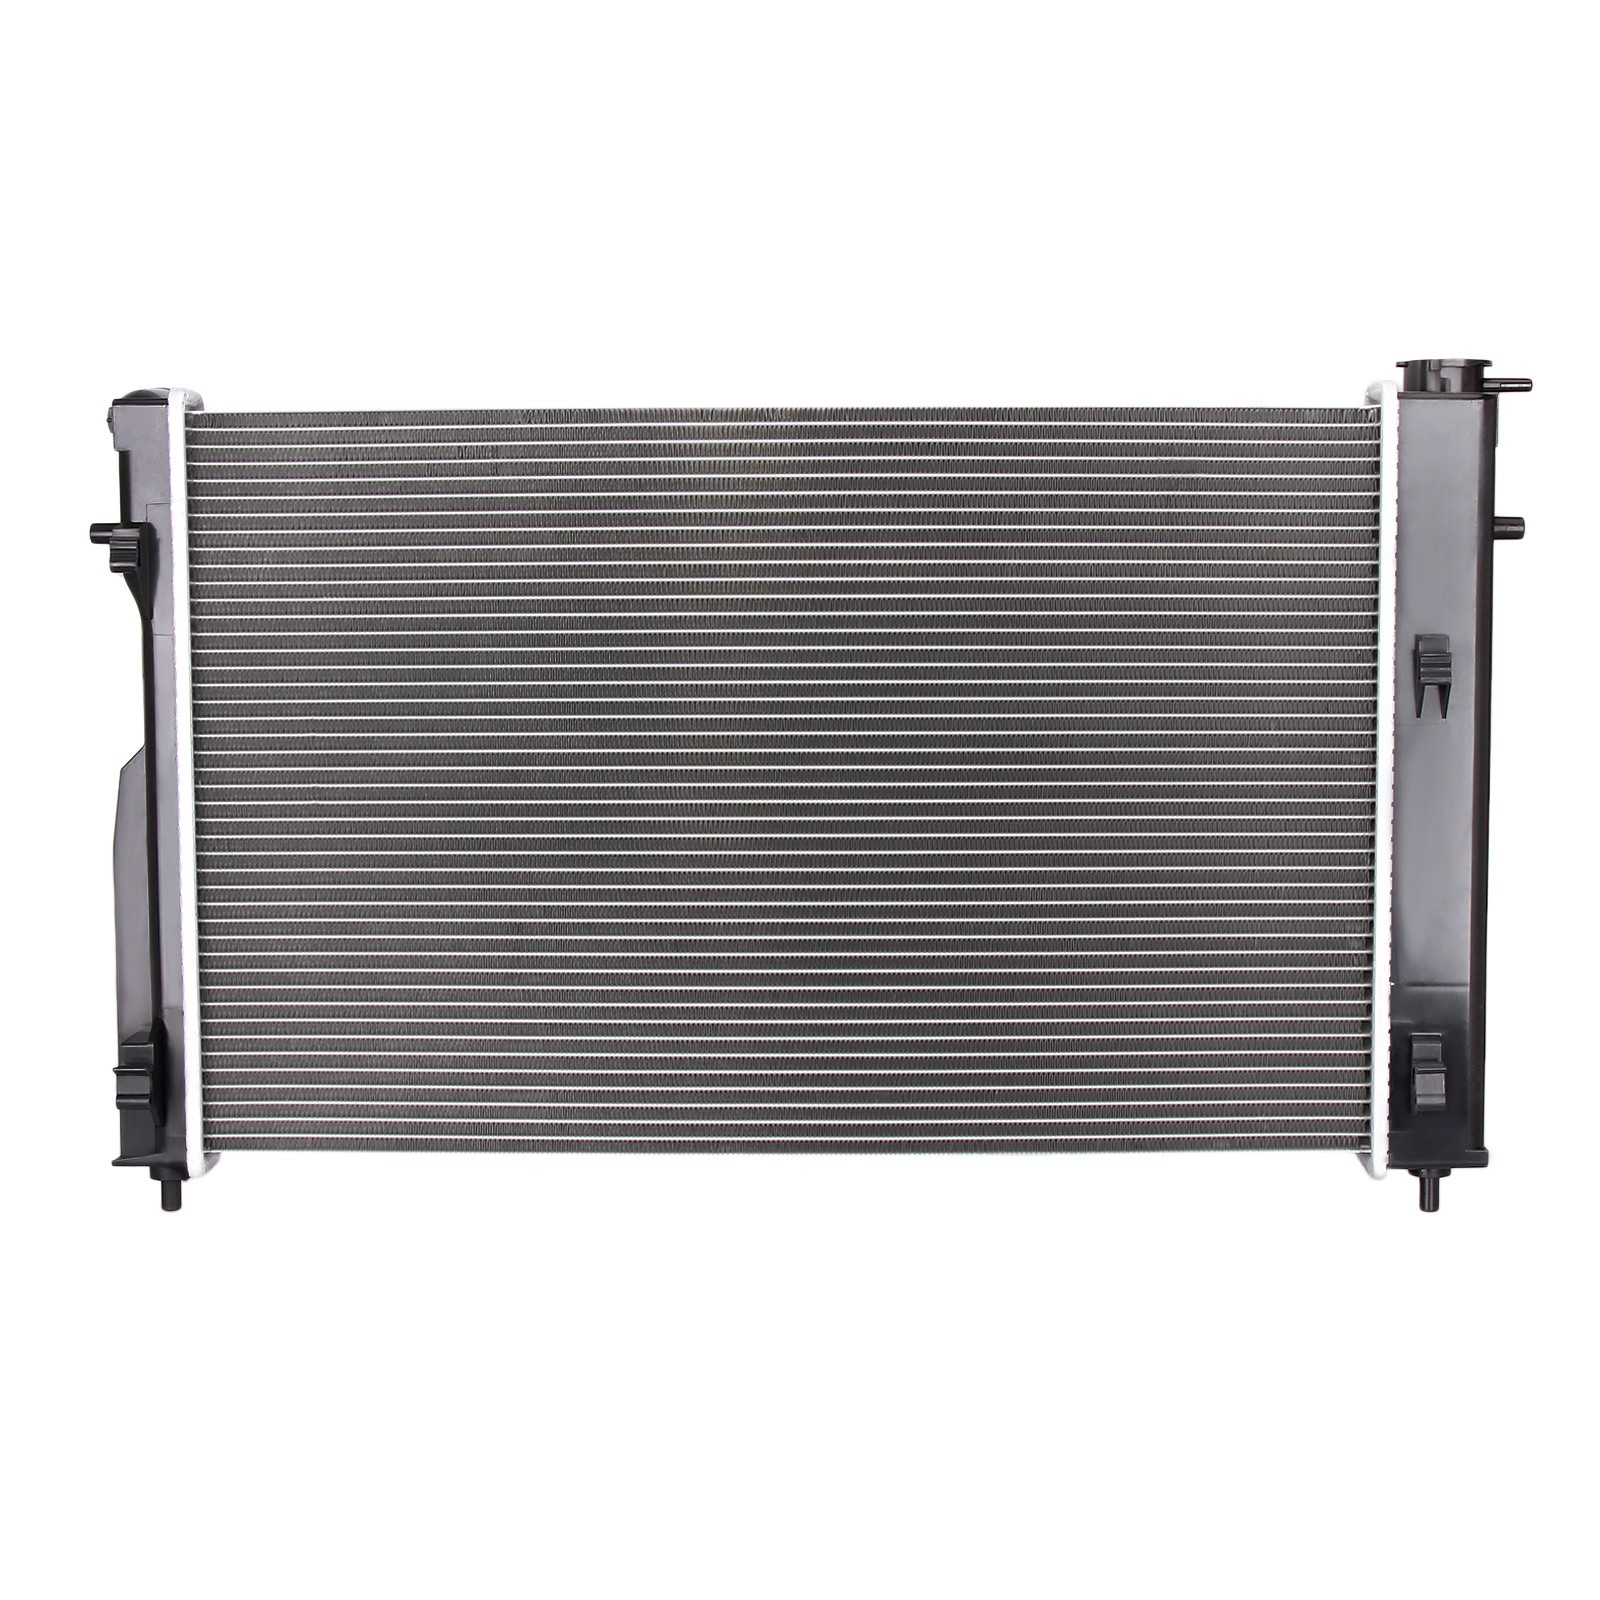 Dromedary-Car Radiator For Holden Vy Commodore V6 38l 2002-2005 Automanual Premium-2